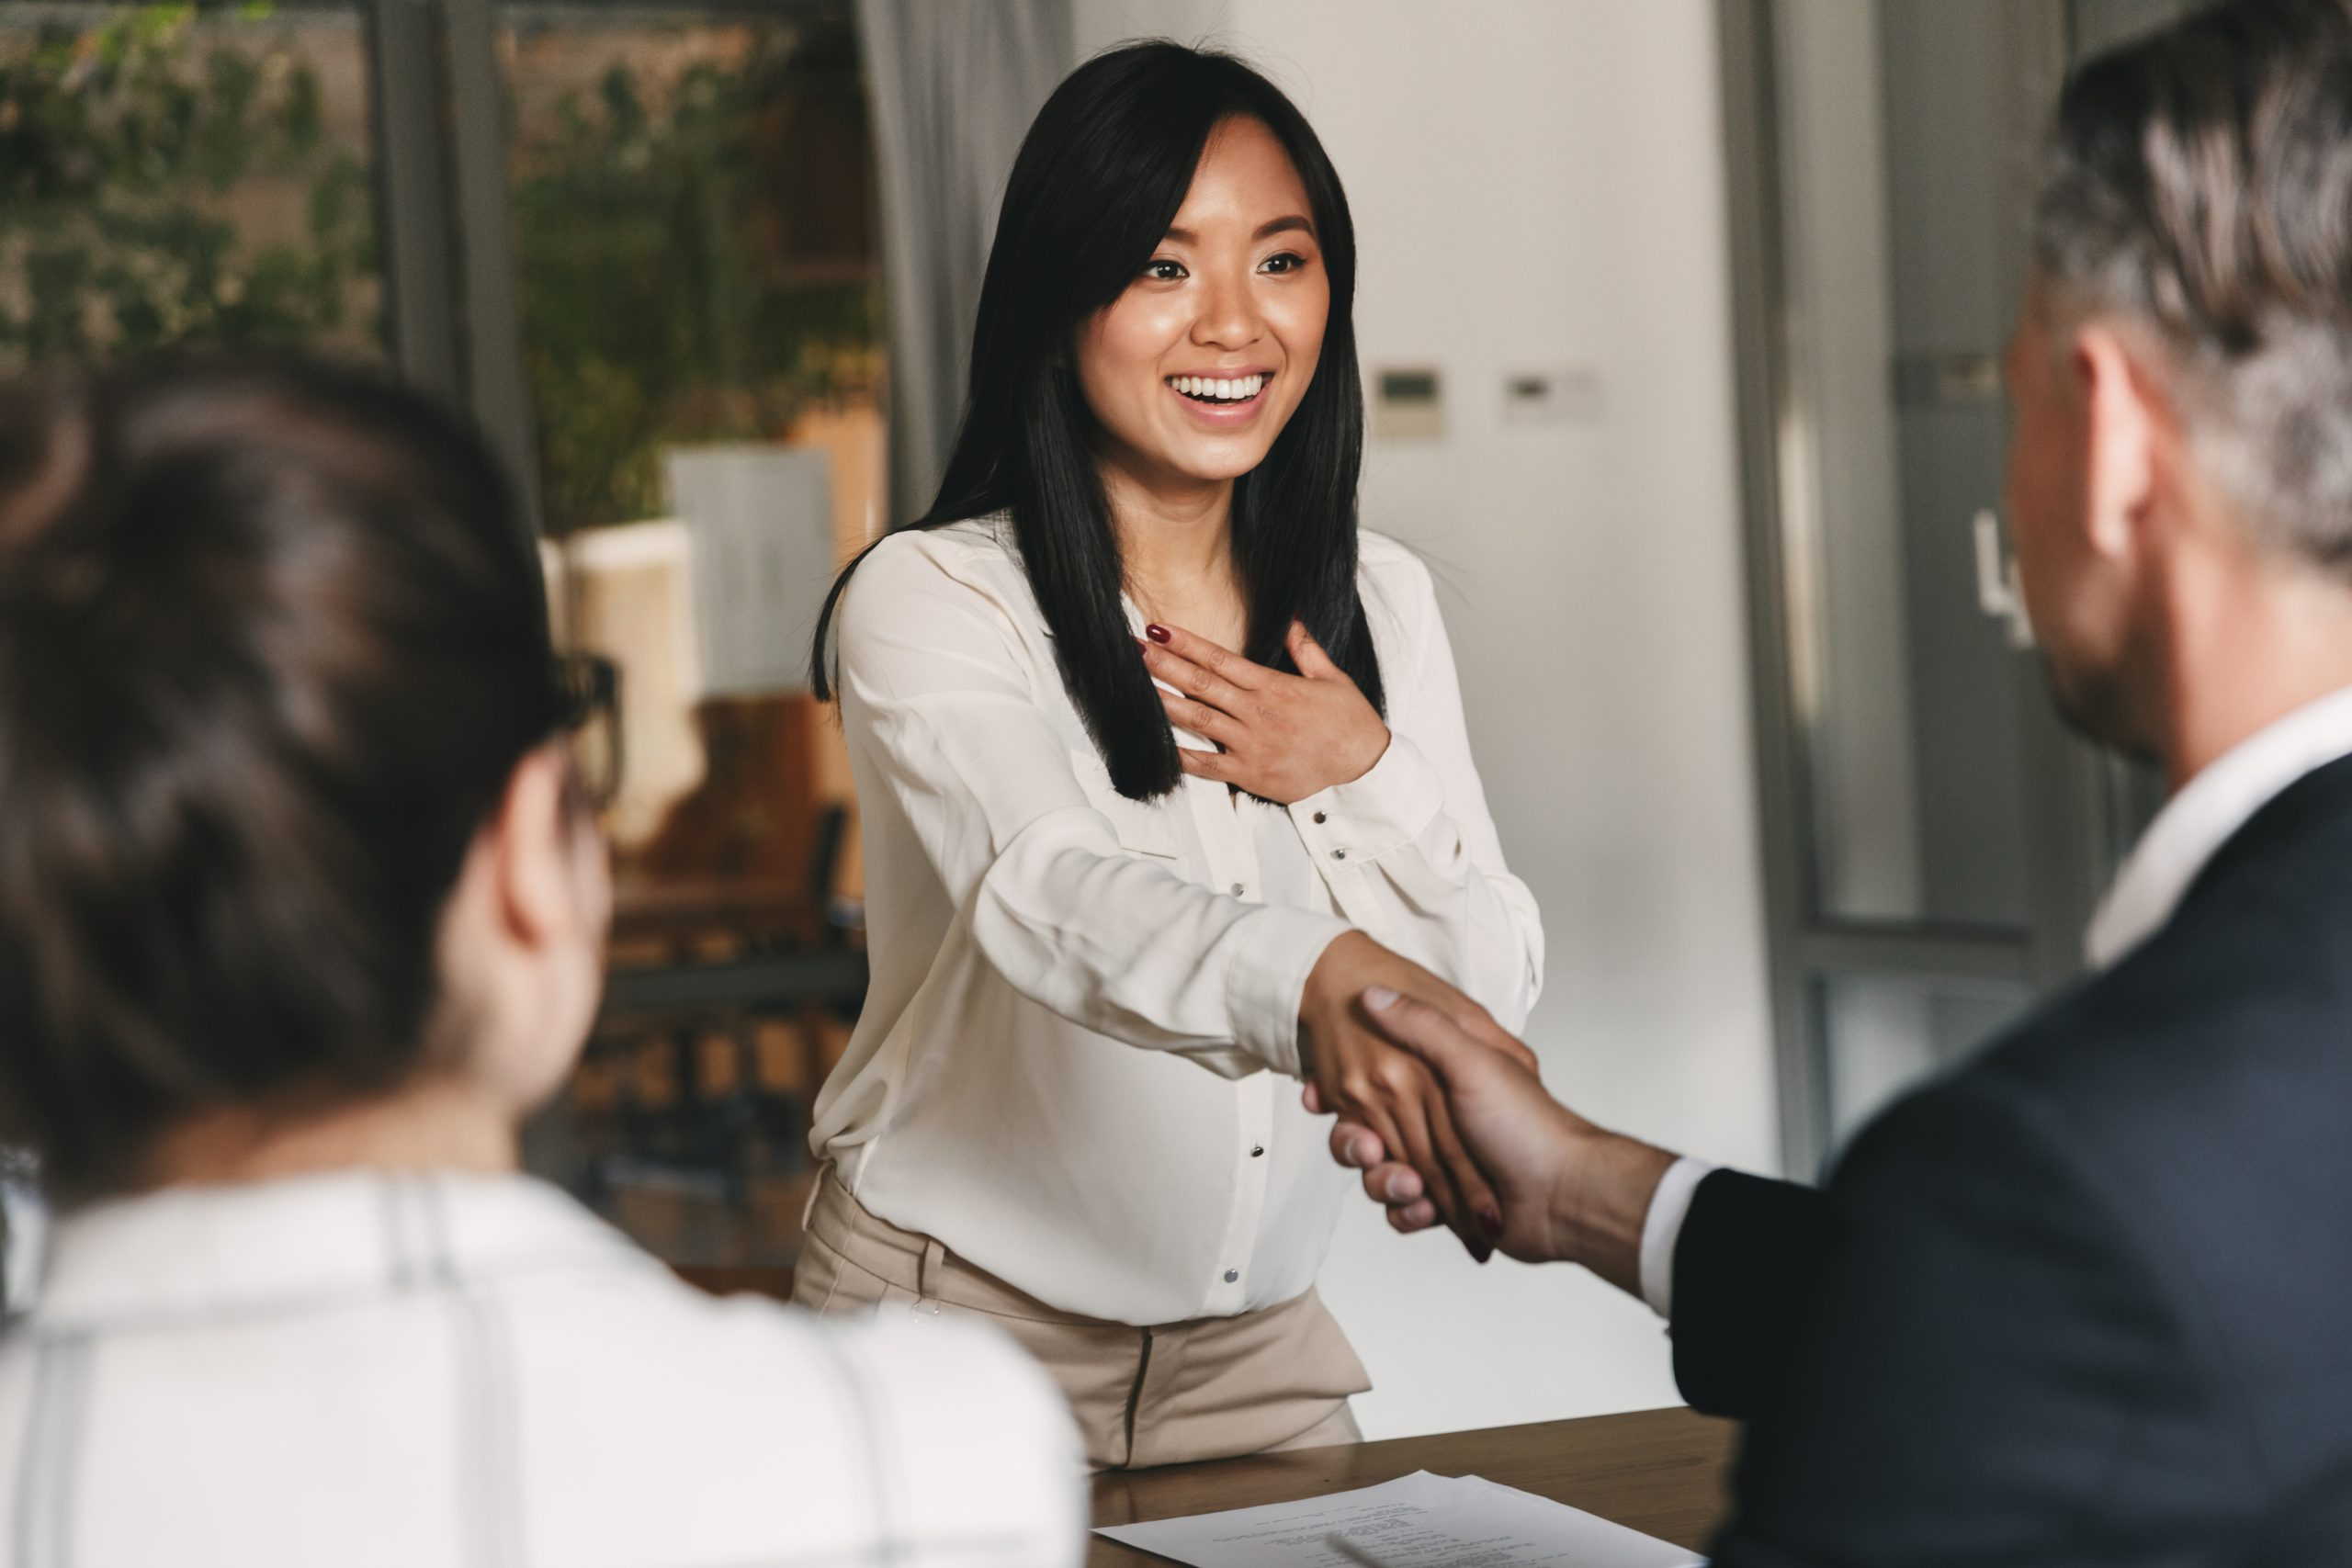 Landing Your Dream Job: Working With A Recruiter to Increase Your Chance